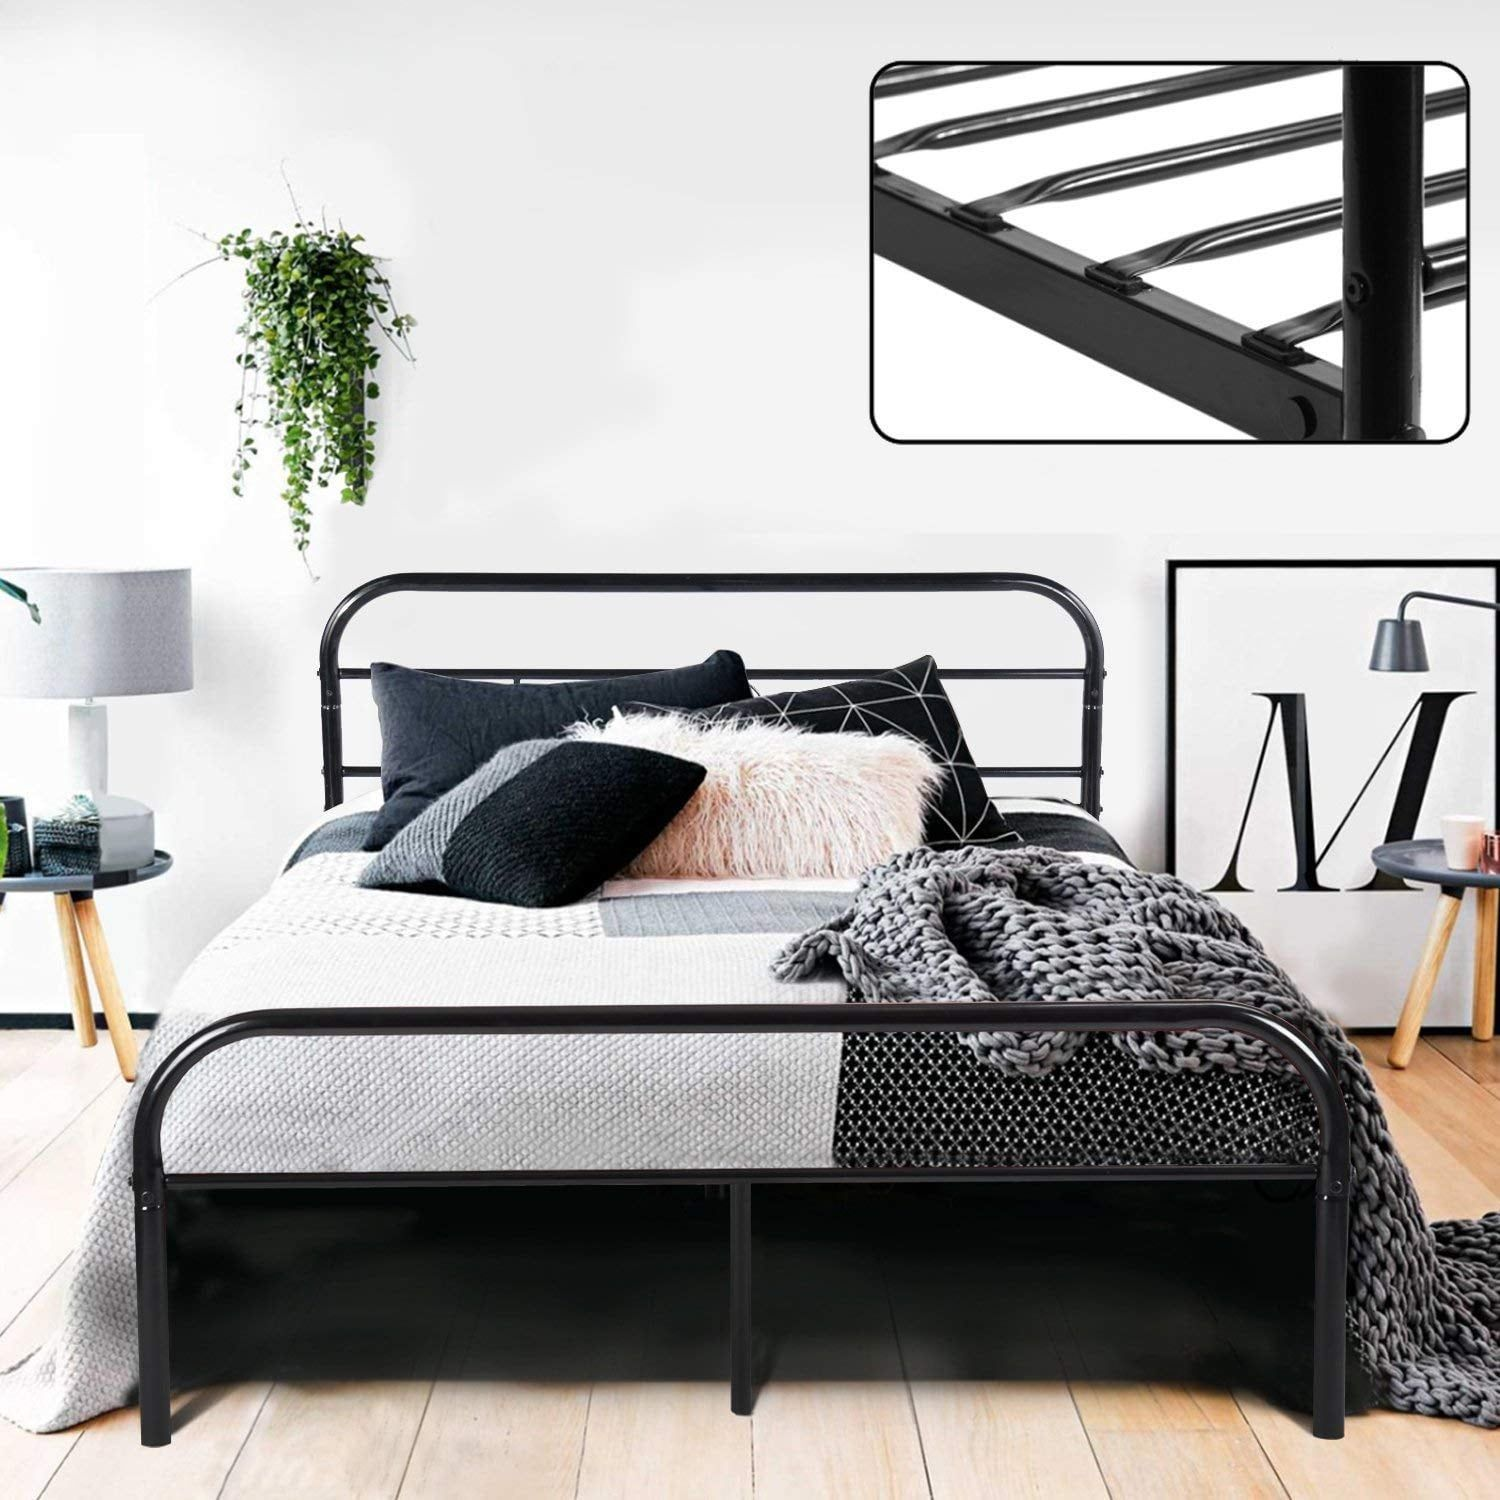 Bedding Photography First Look Ideas